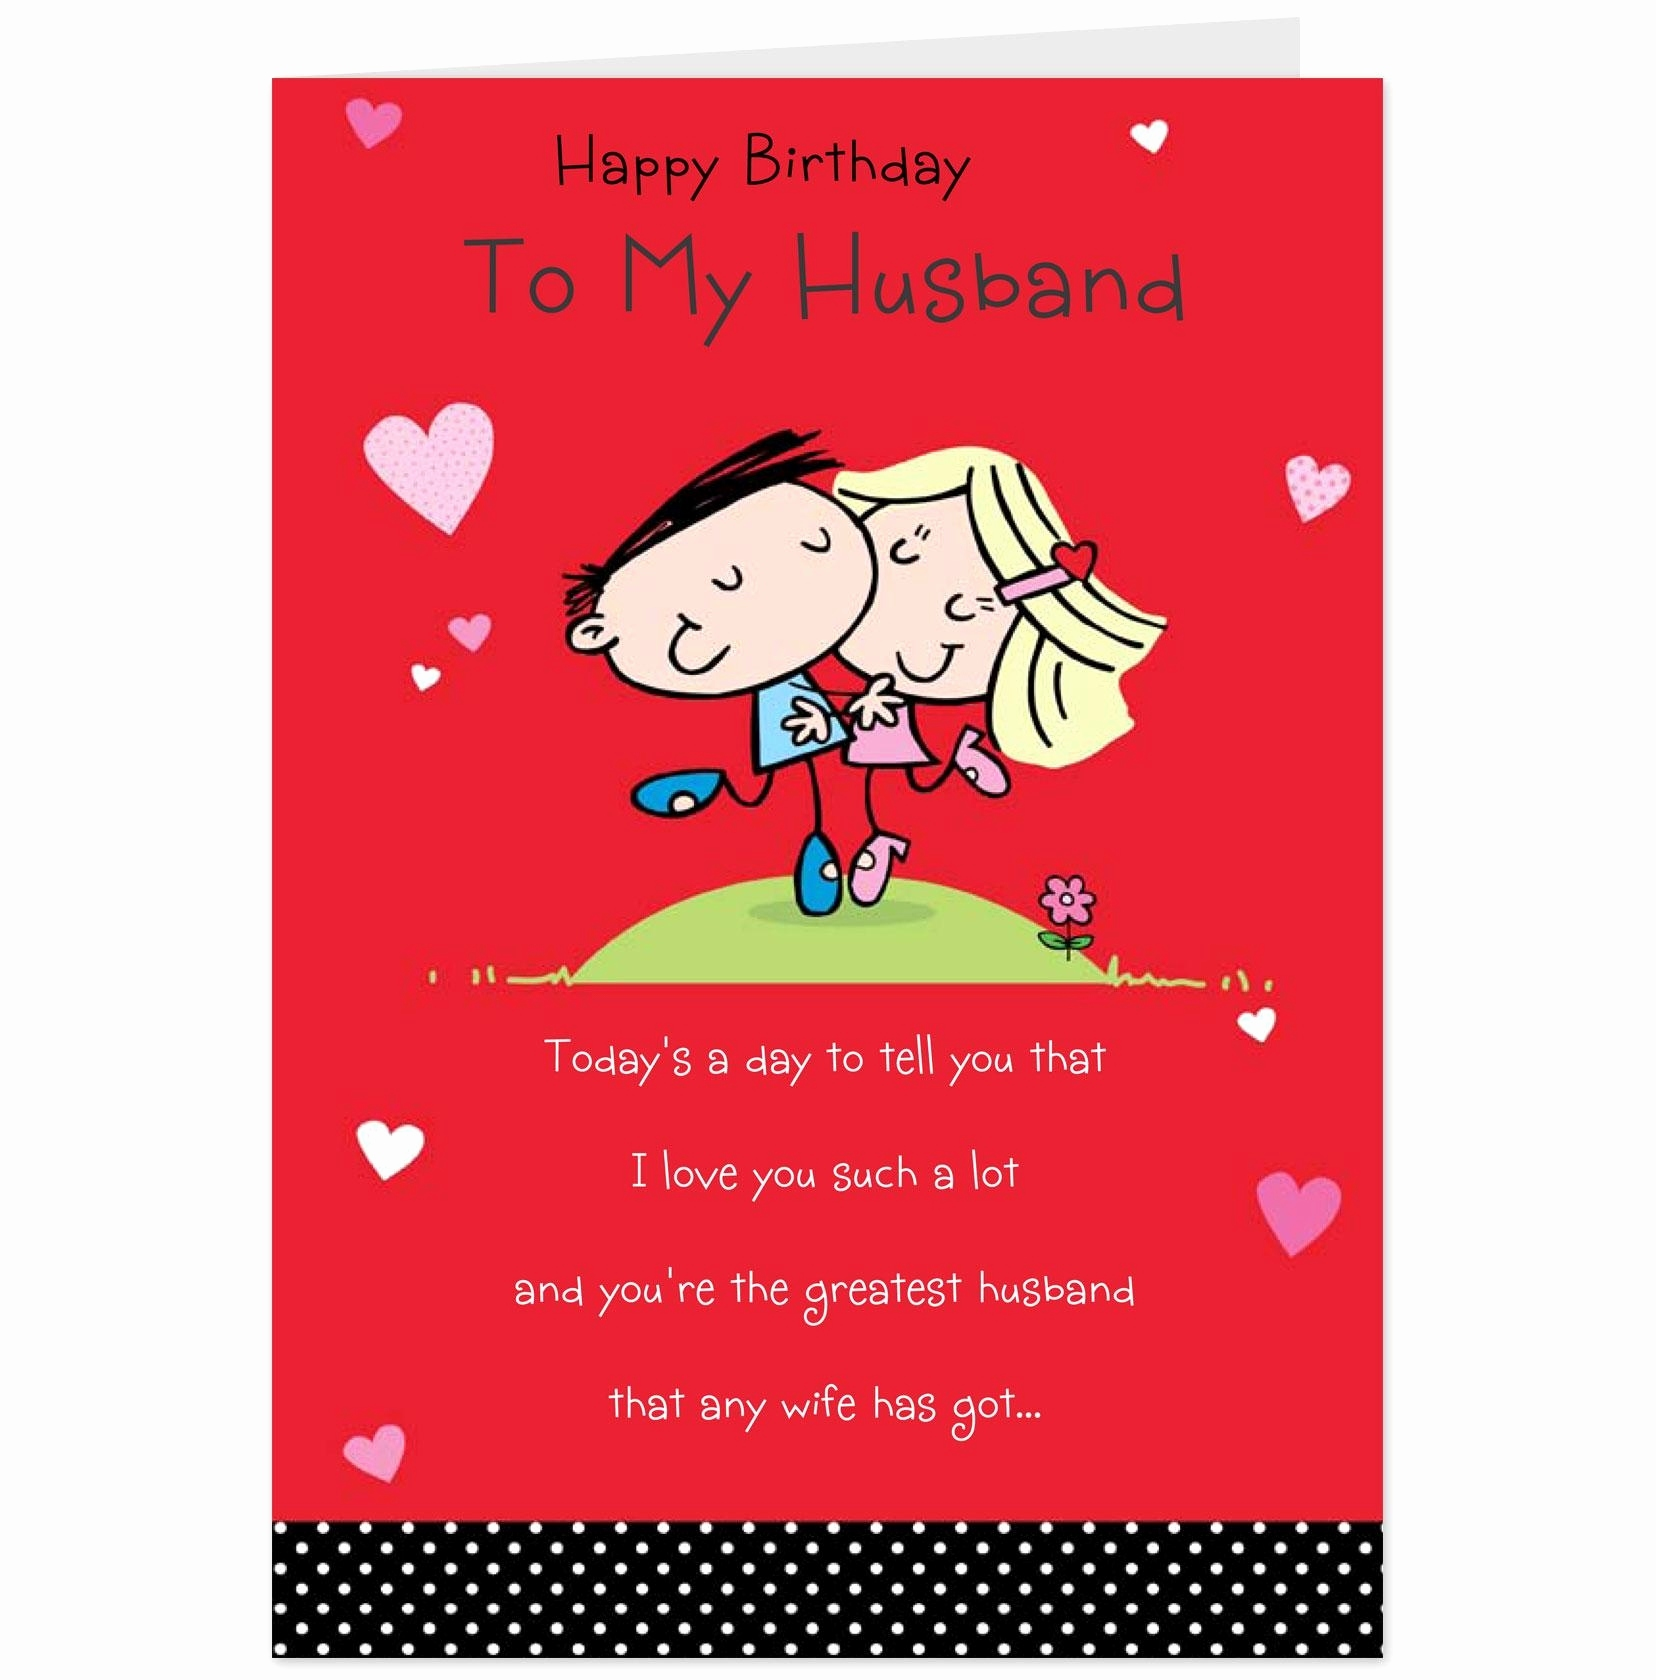 happy birthday husband funny ; funny-husband-birthday-quotes-awesome-happiness-quotes-stylish-happy-birthday-to-my-husband-funny-of-funny-husband-birthday-quotes